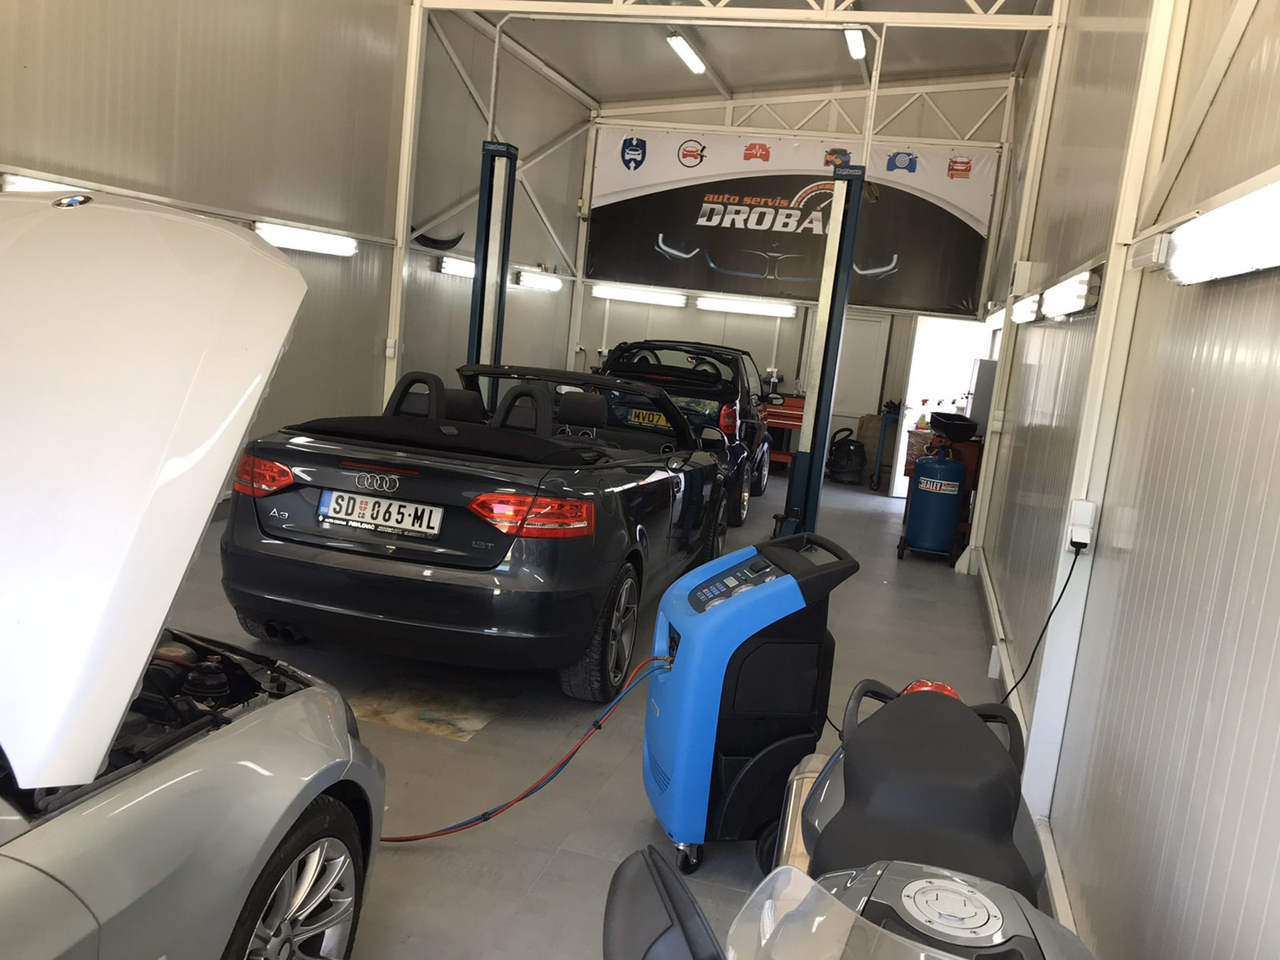 CAR LOT AND CAR SERVICE DROBAC Tire repair Mladenovac - Photo 8